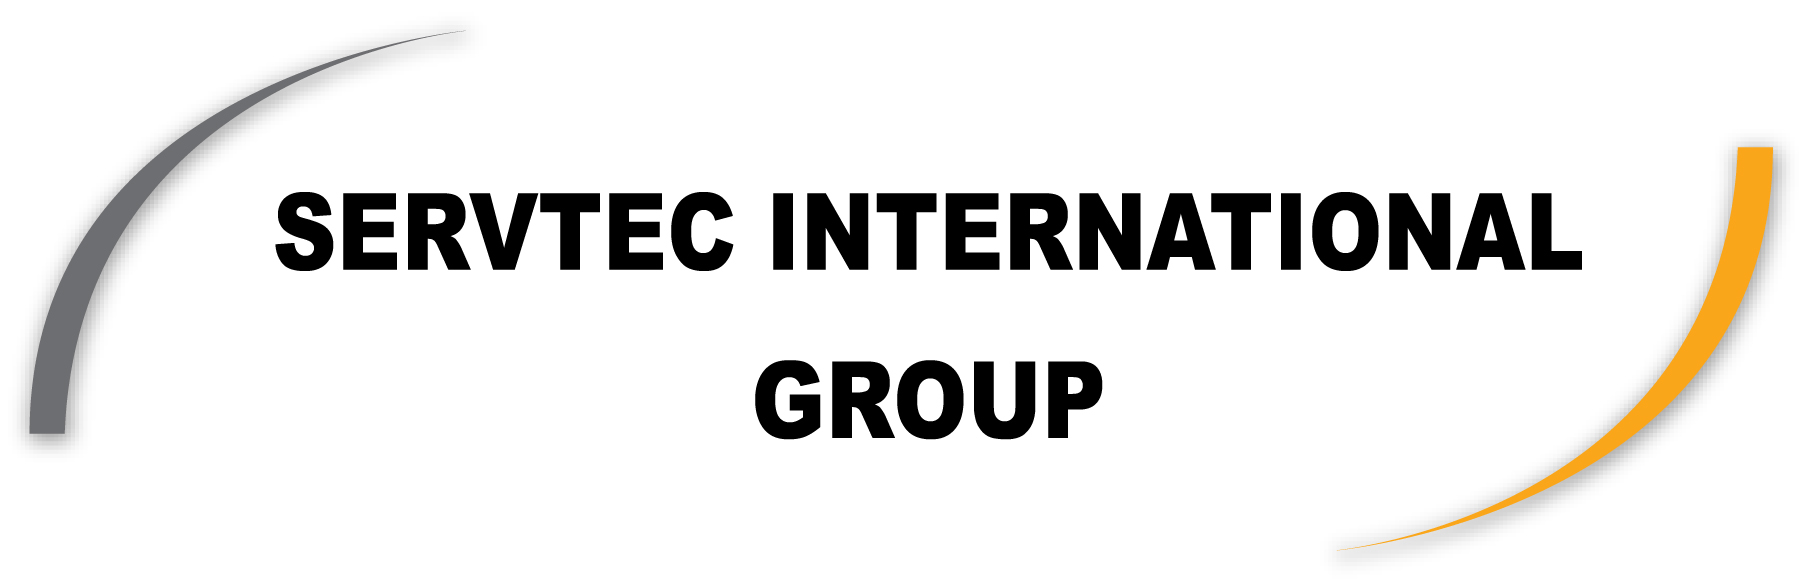 LOGO SERVTEC INTERNATIONAL